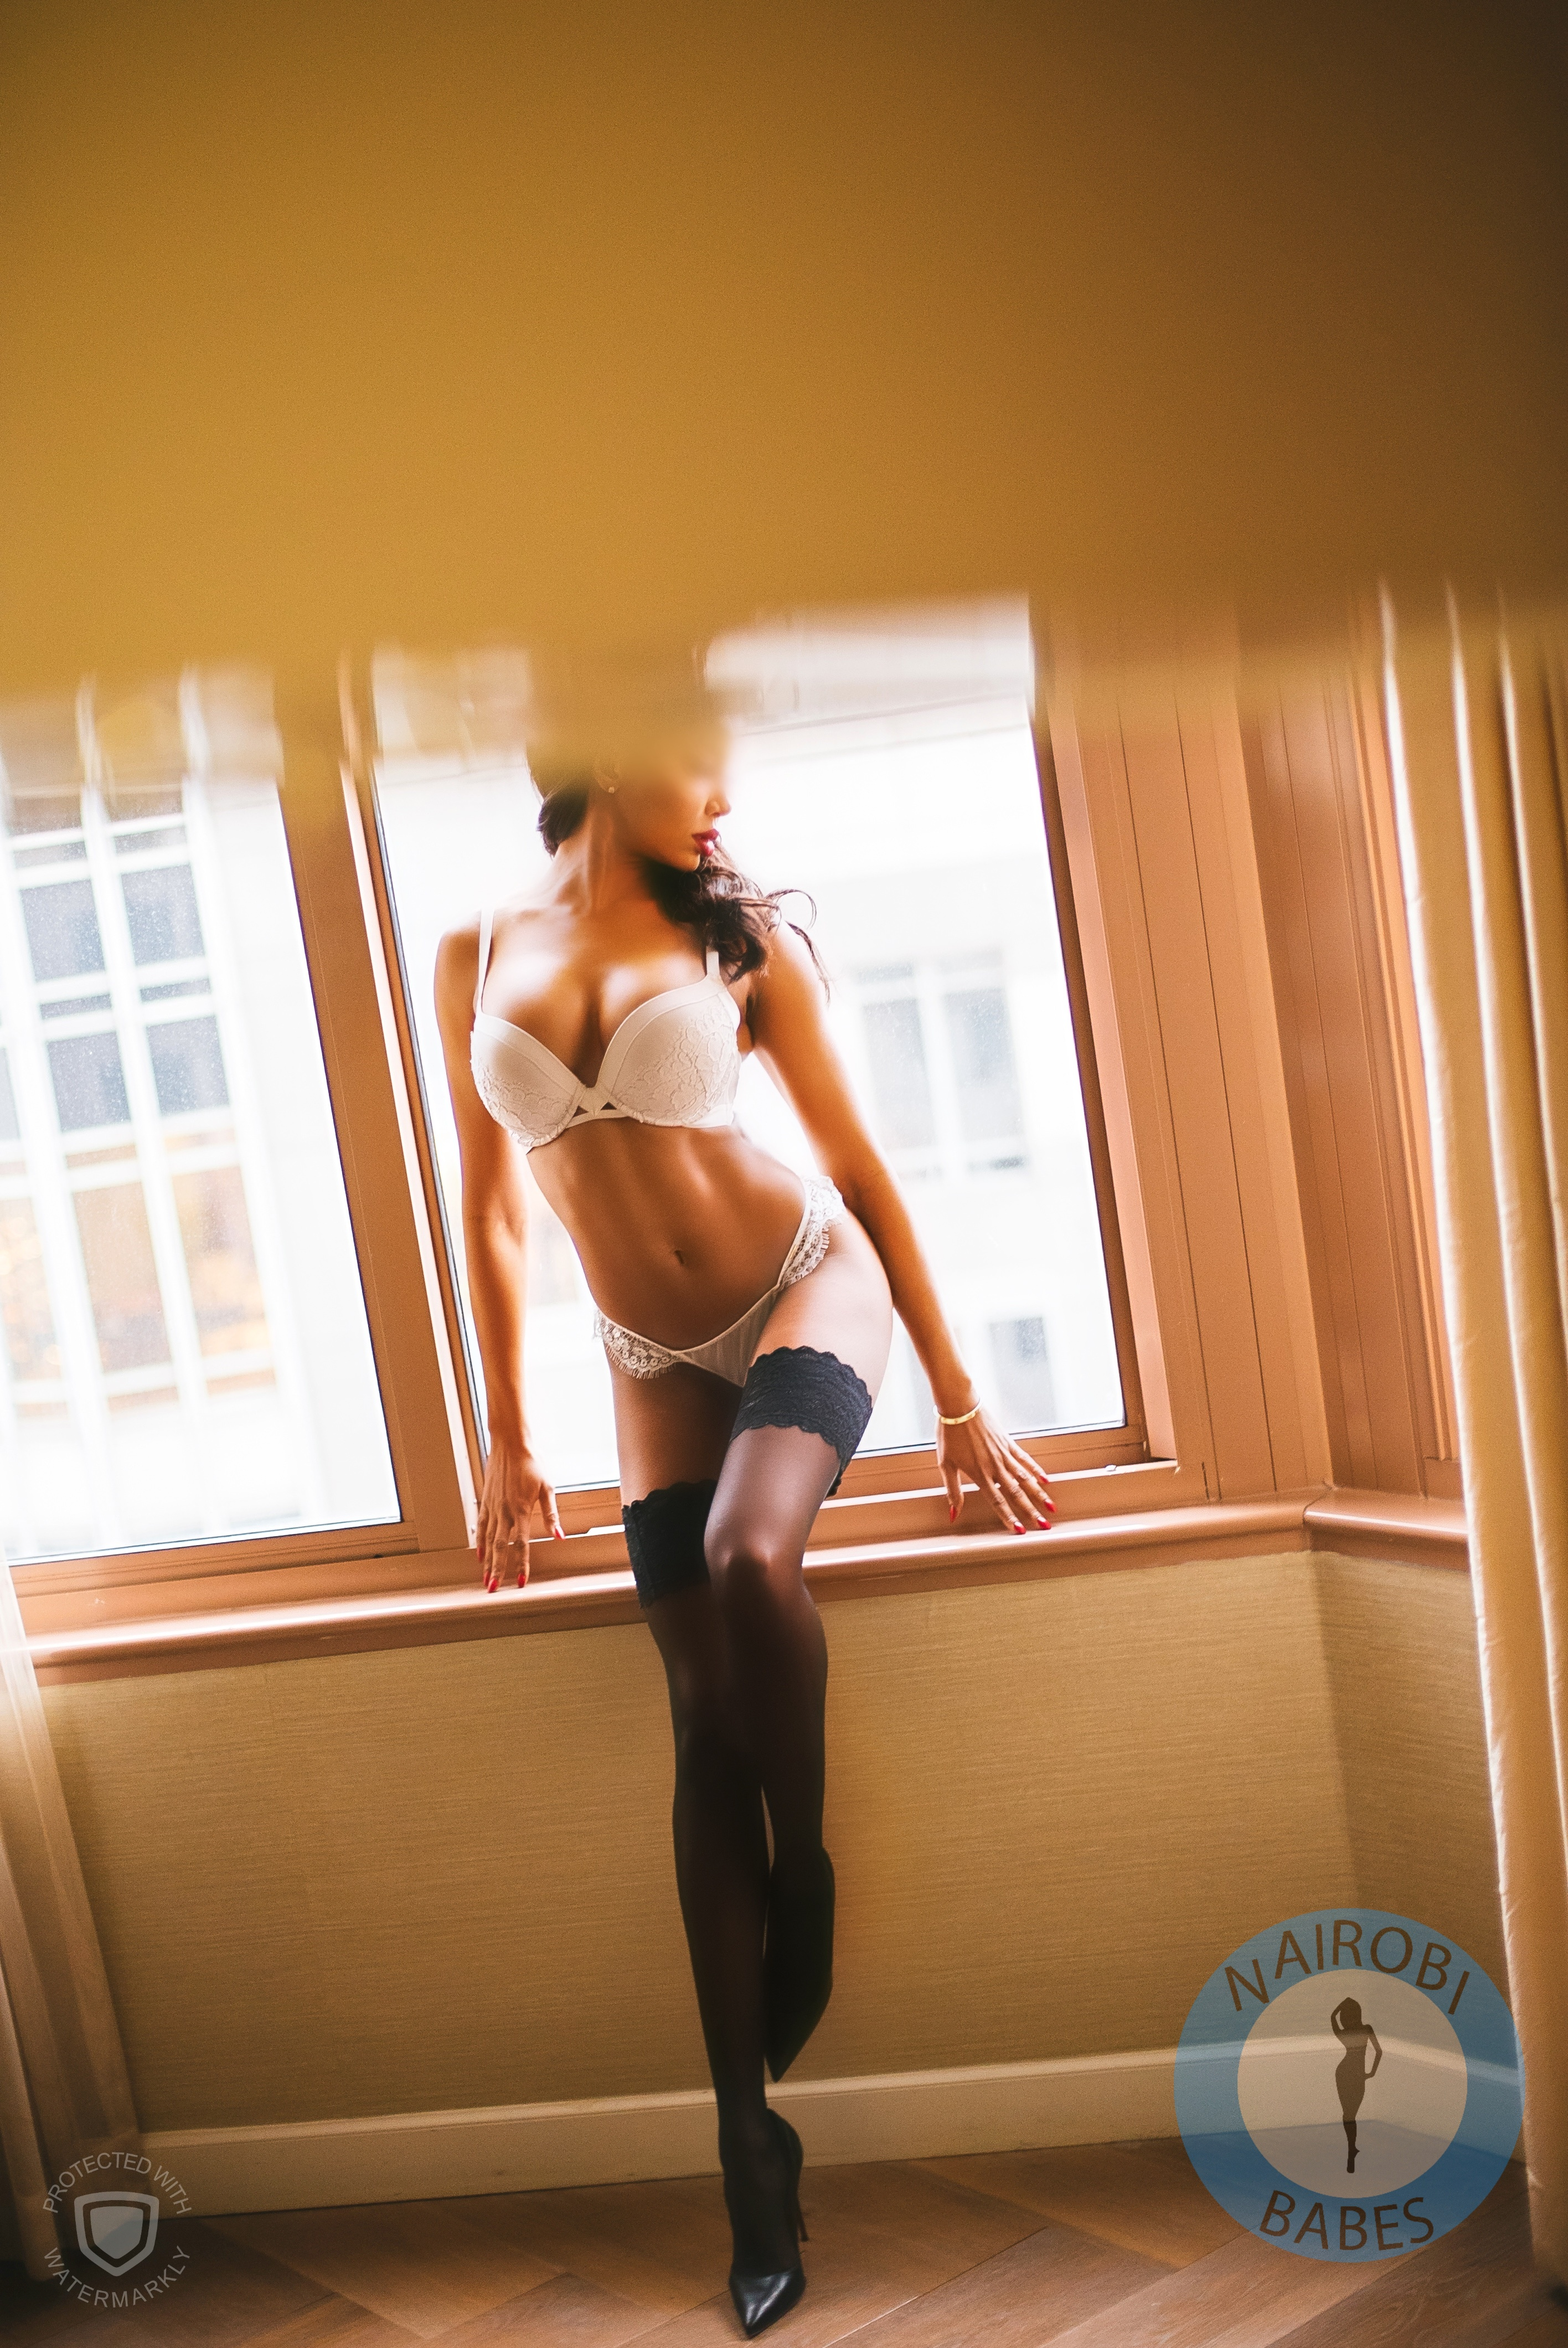 Spend some time with Nairobibabes Escort Bella in CBD; you won't regret it